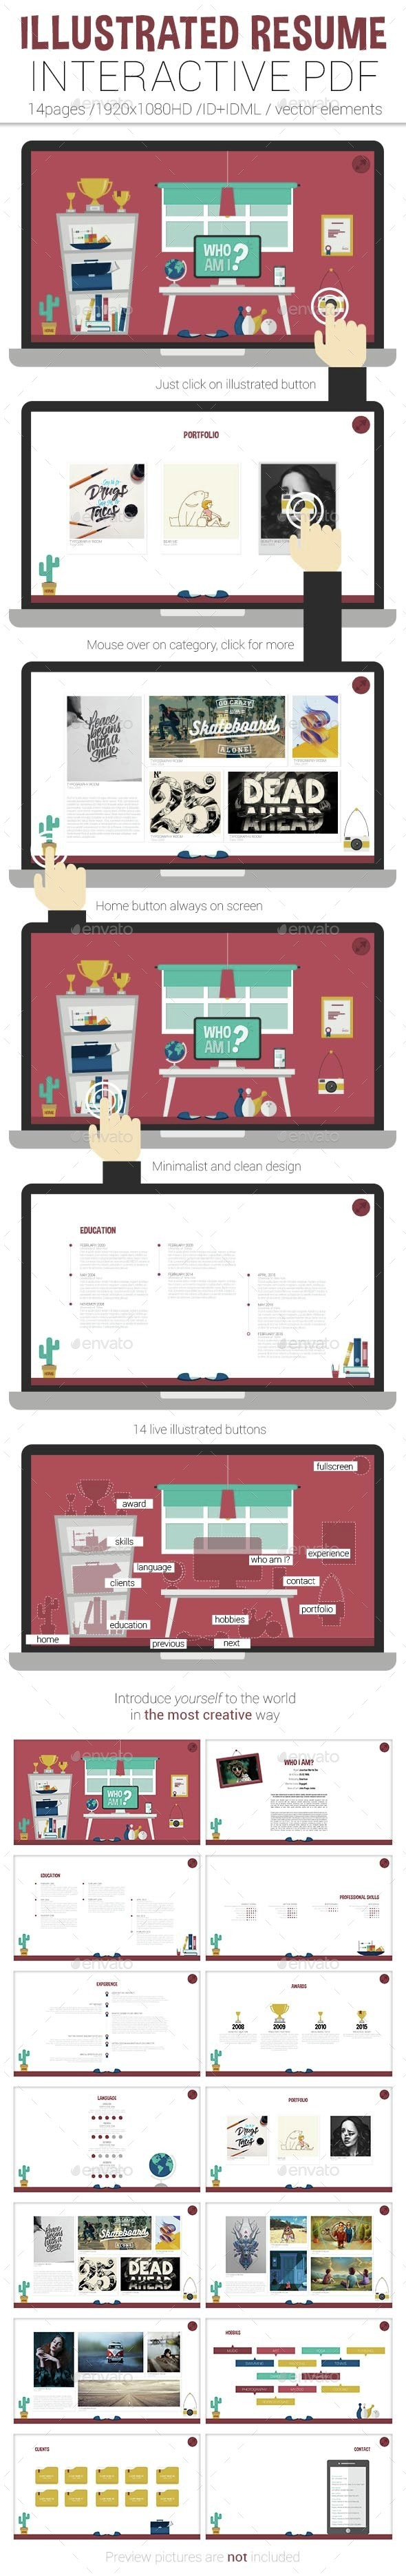 Illustrated Interactive PDF Resume - ePublishing